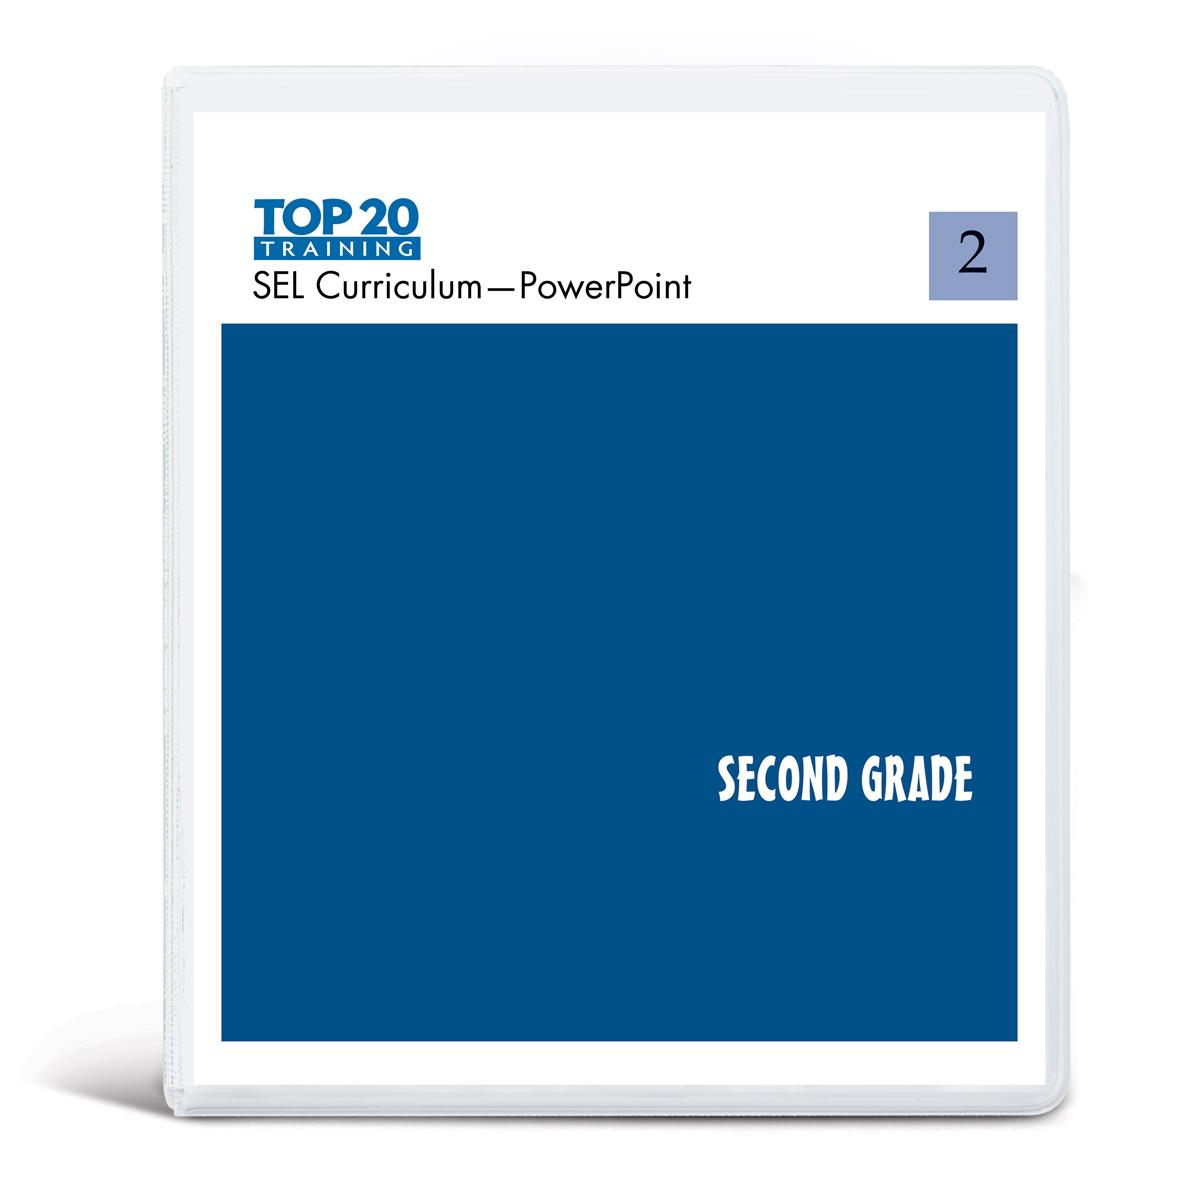 Top 20 teachers PowerPoint curriculum for second grade